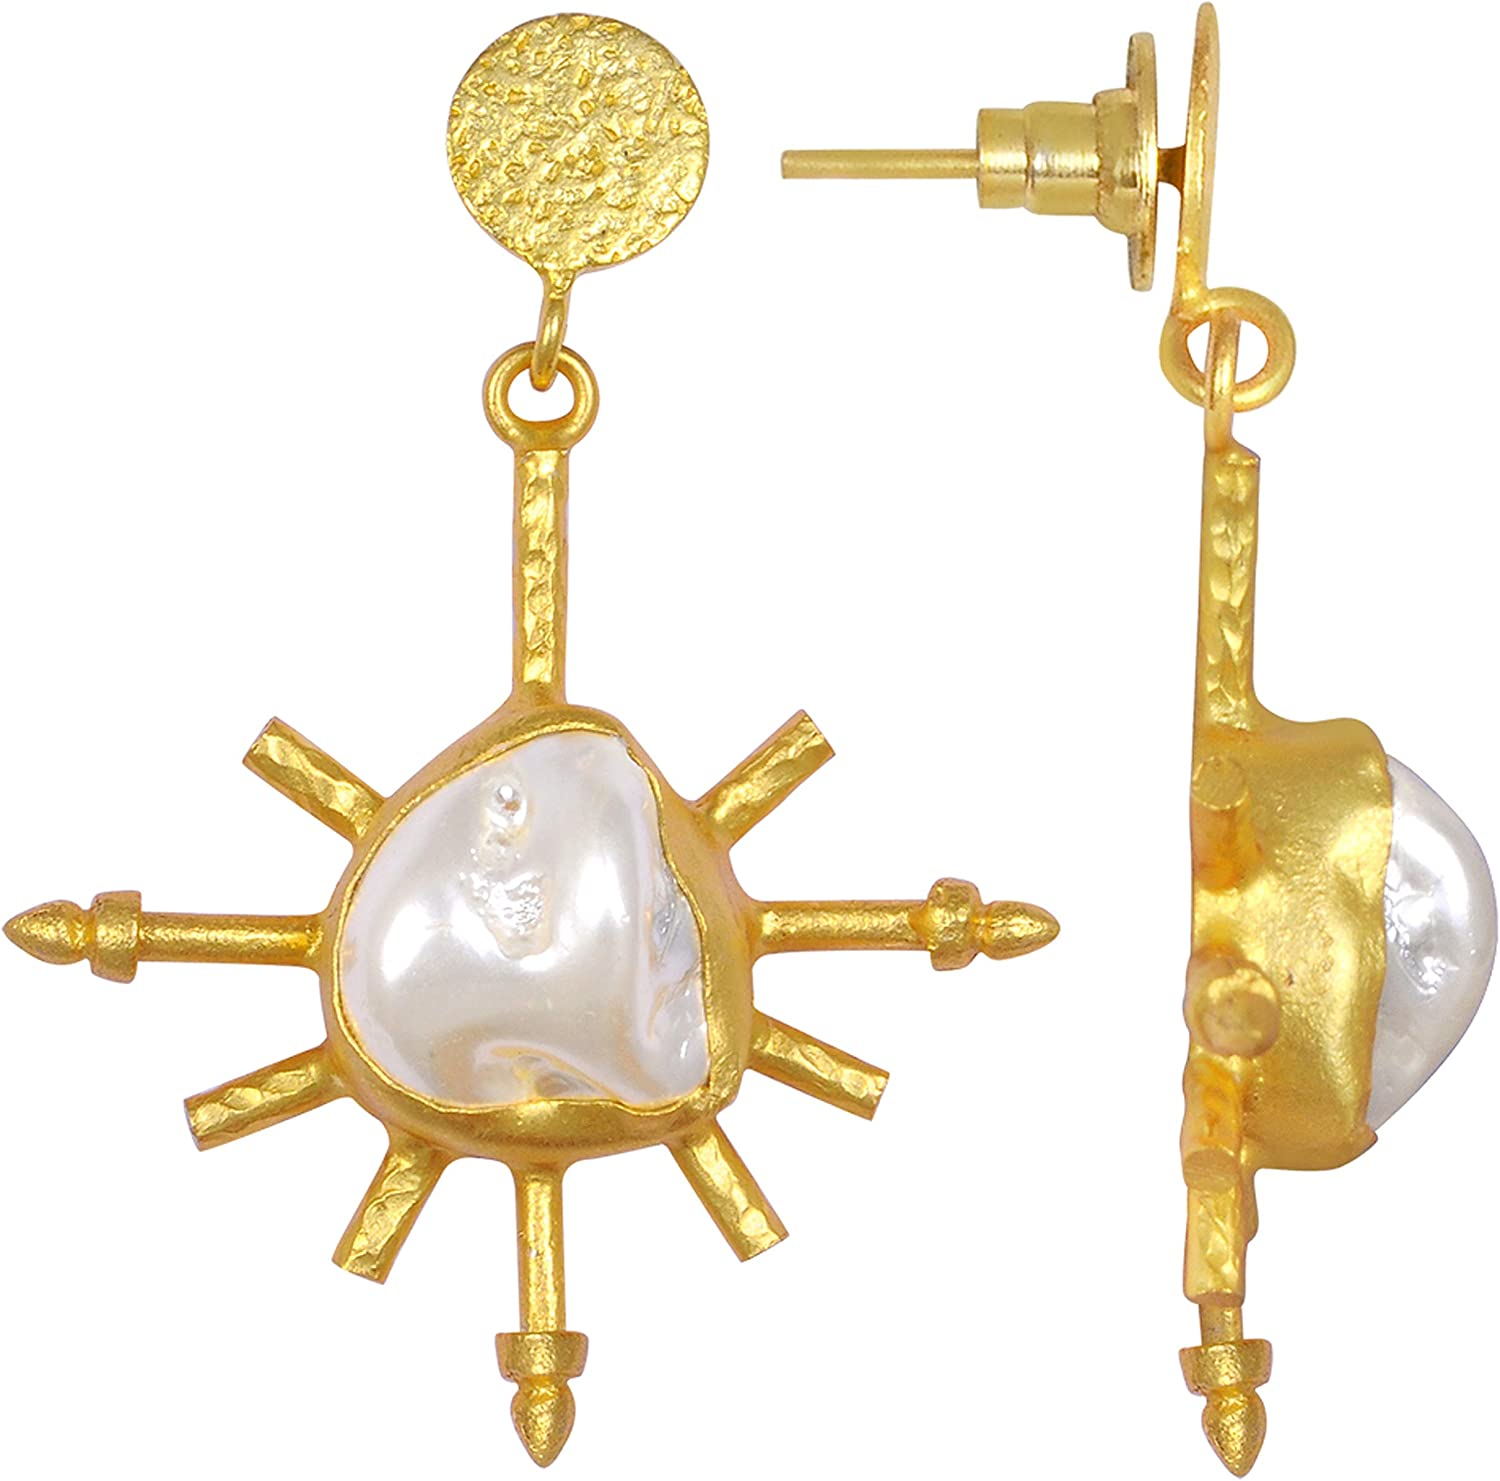 Washington Mall Orchid Jewelry Brass Hypoallergenic Dangle ! Super beauty product restock quality top! Sets Earrings For Wom